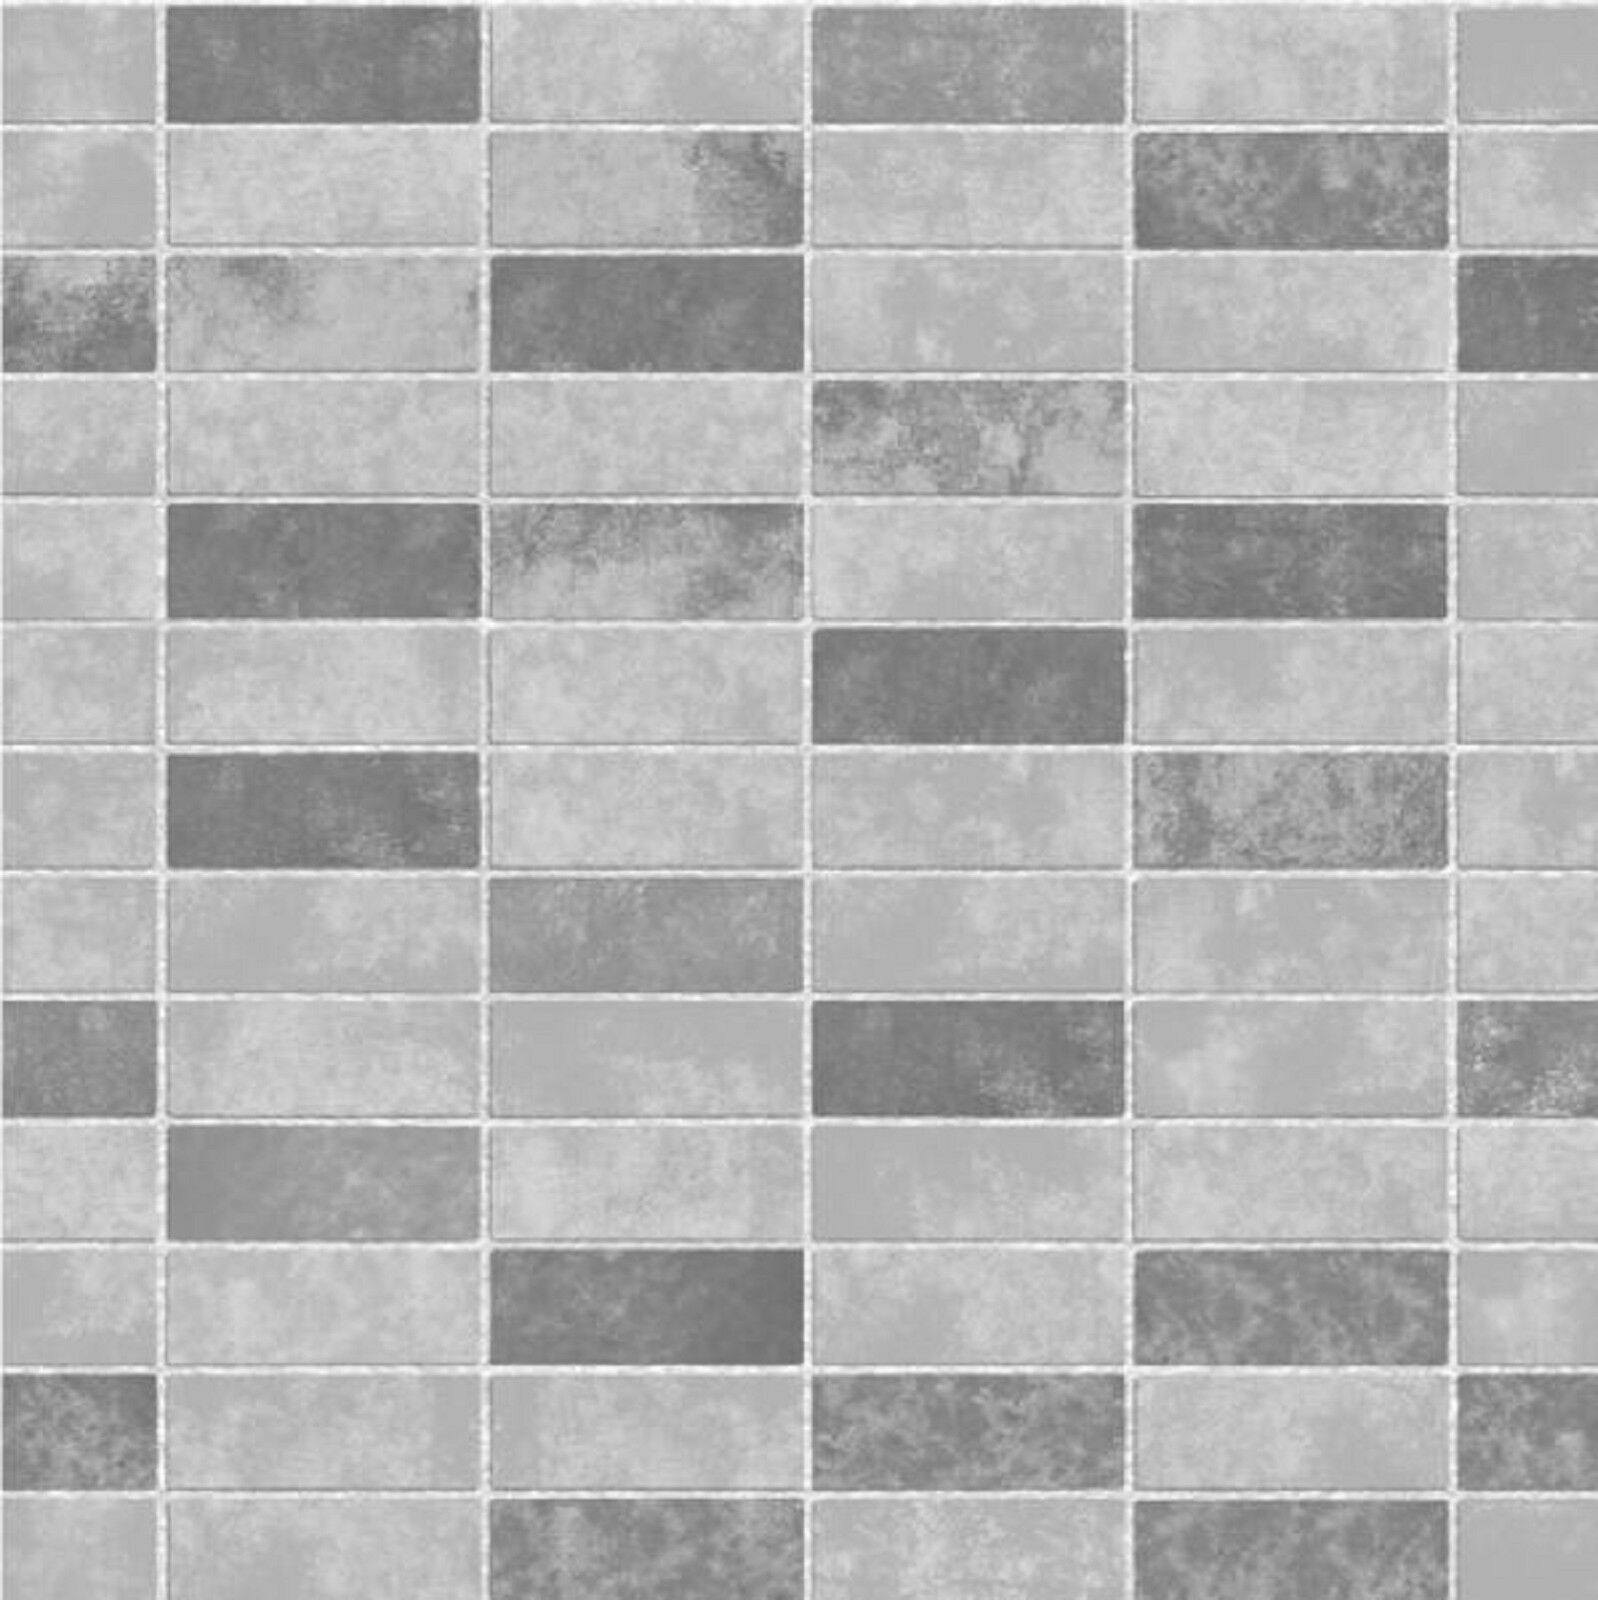 Textured Wallpaper For Bathrooms 2017: Fine Decor FD40117 Ceramica Grey Slate Tile Brick Effect